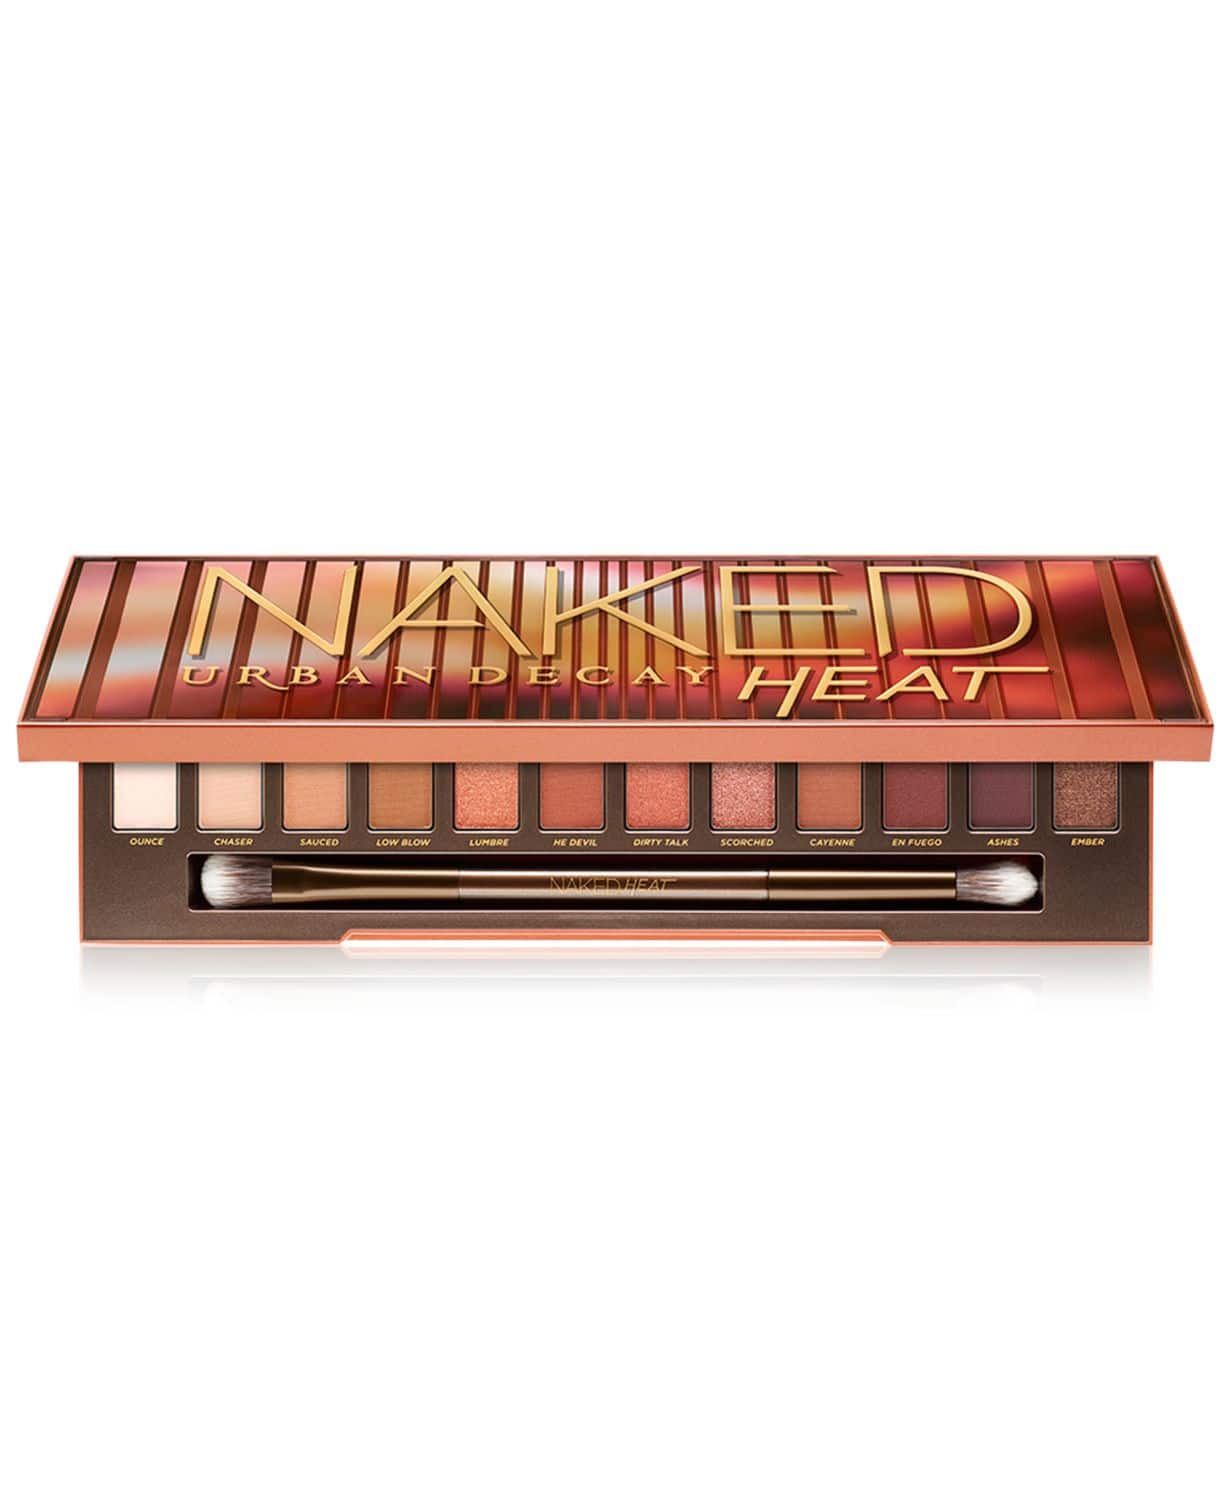 Macys.com - Urban Decay Naked Heat Palette $22.95 + Free ship to store